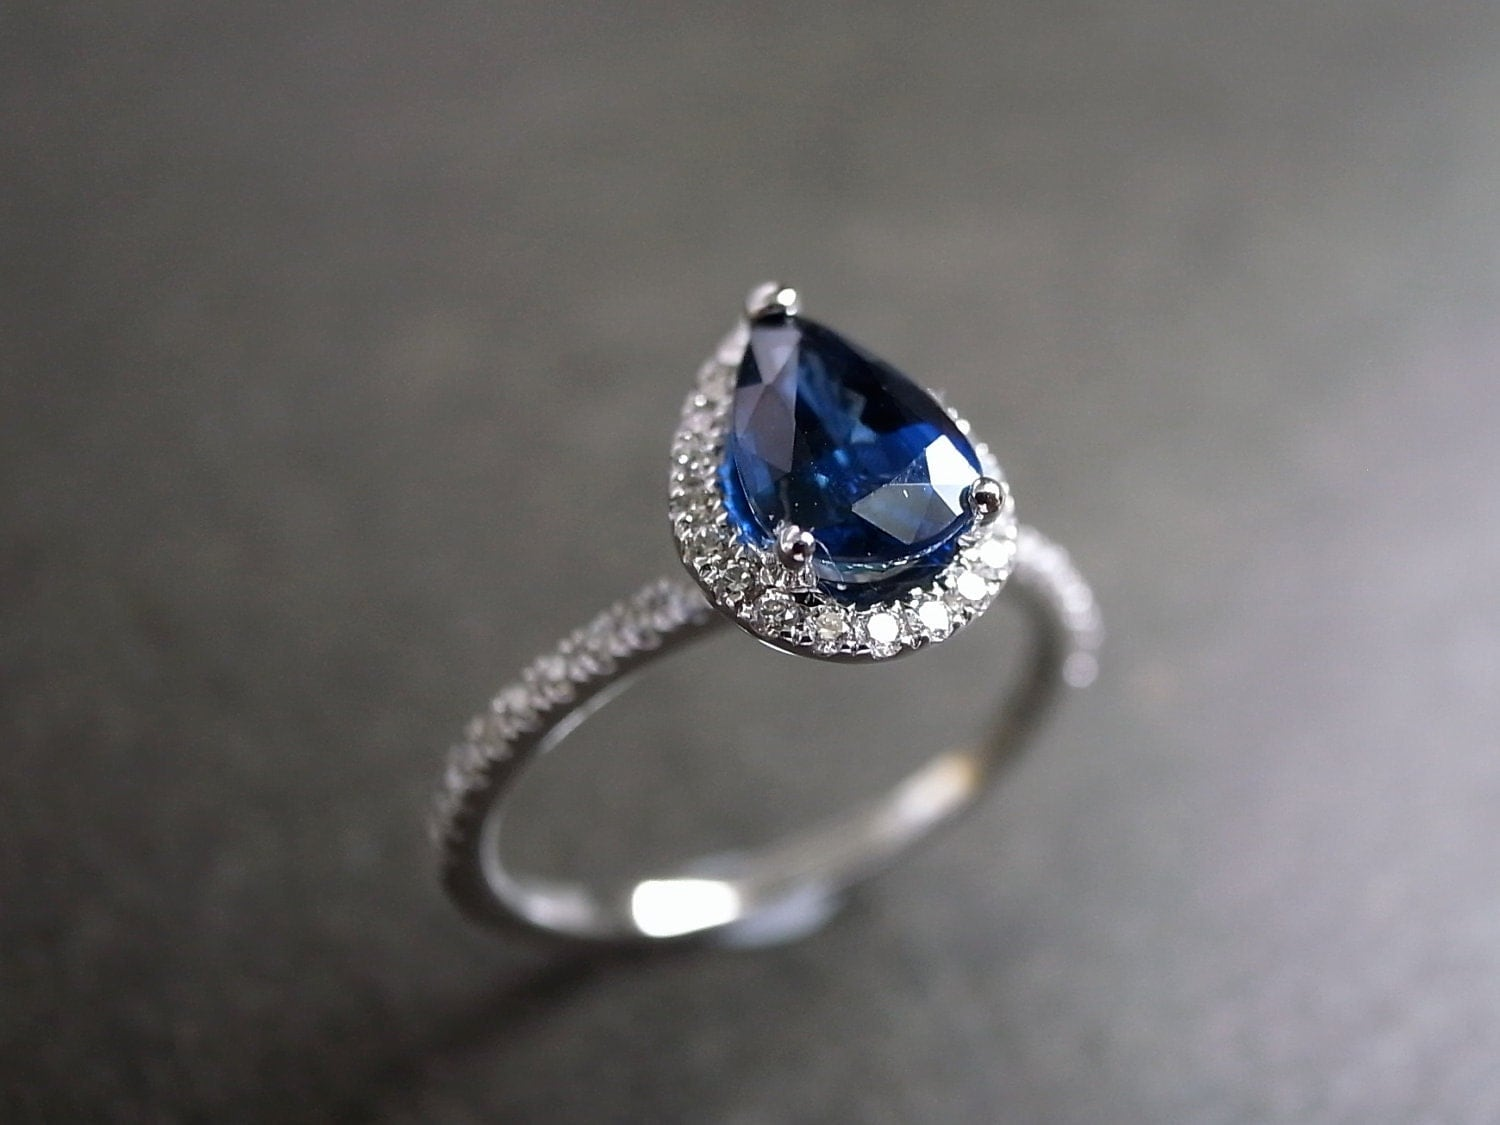 blue sapphire engagement ring engagement ring diamond engagement ring diamond wedding ring pear sapphire ring in 14k white gold - Blue Sapphire Wedding Rings